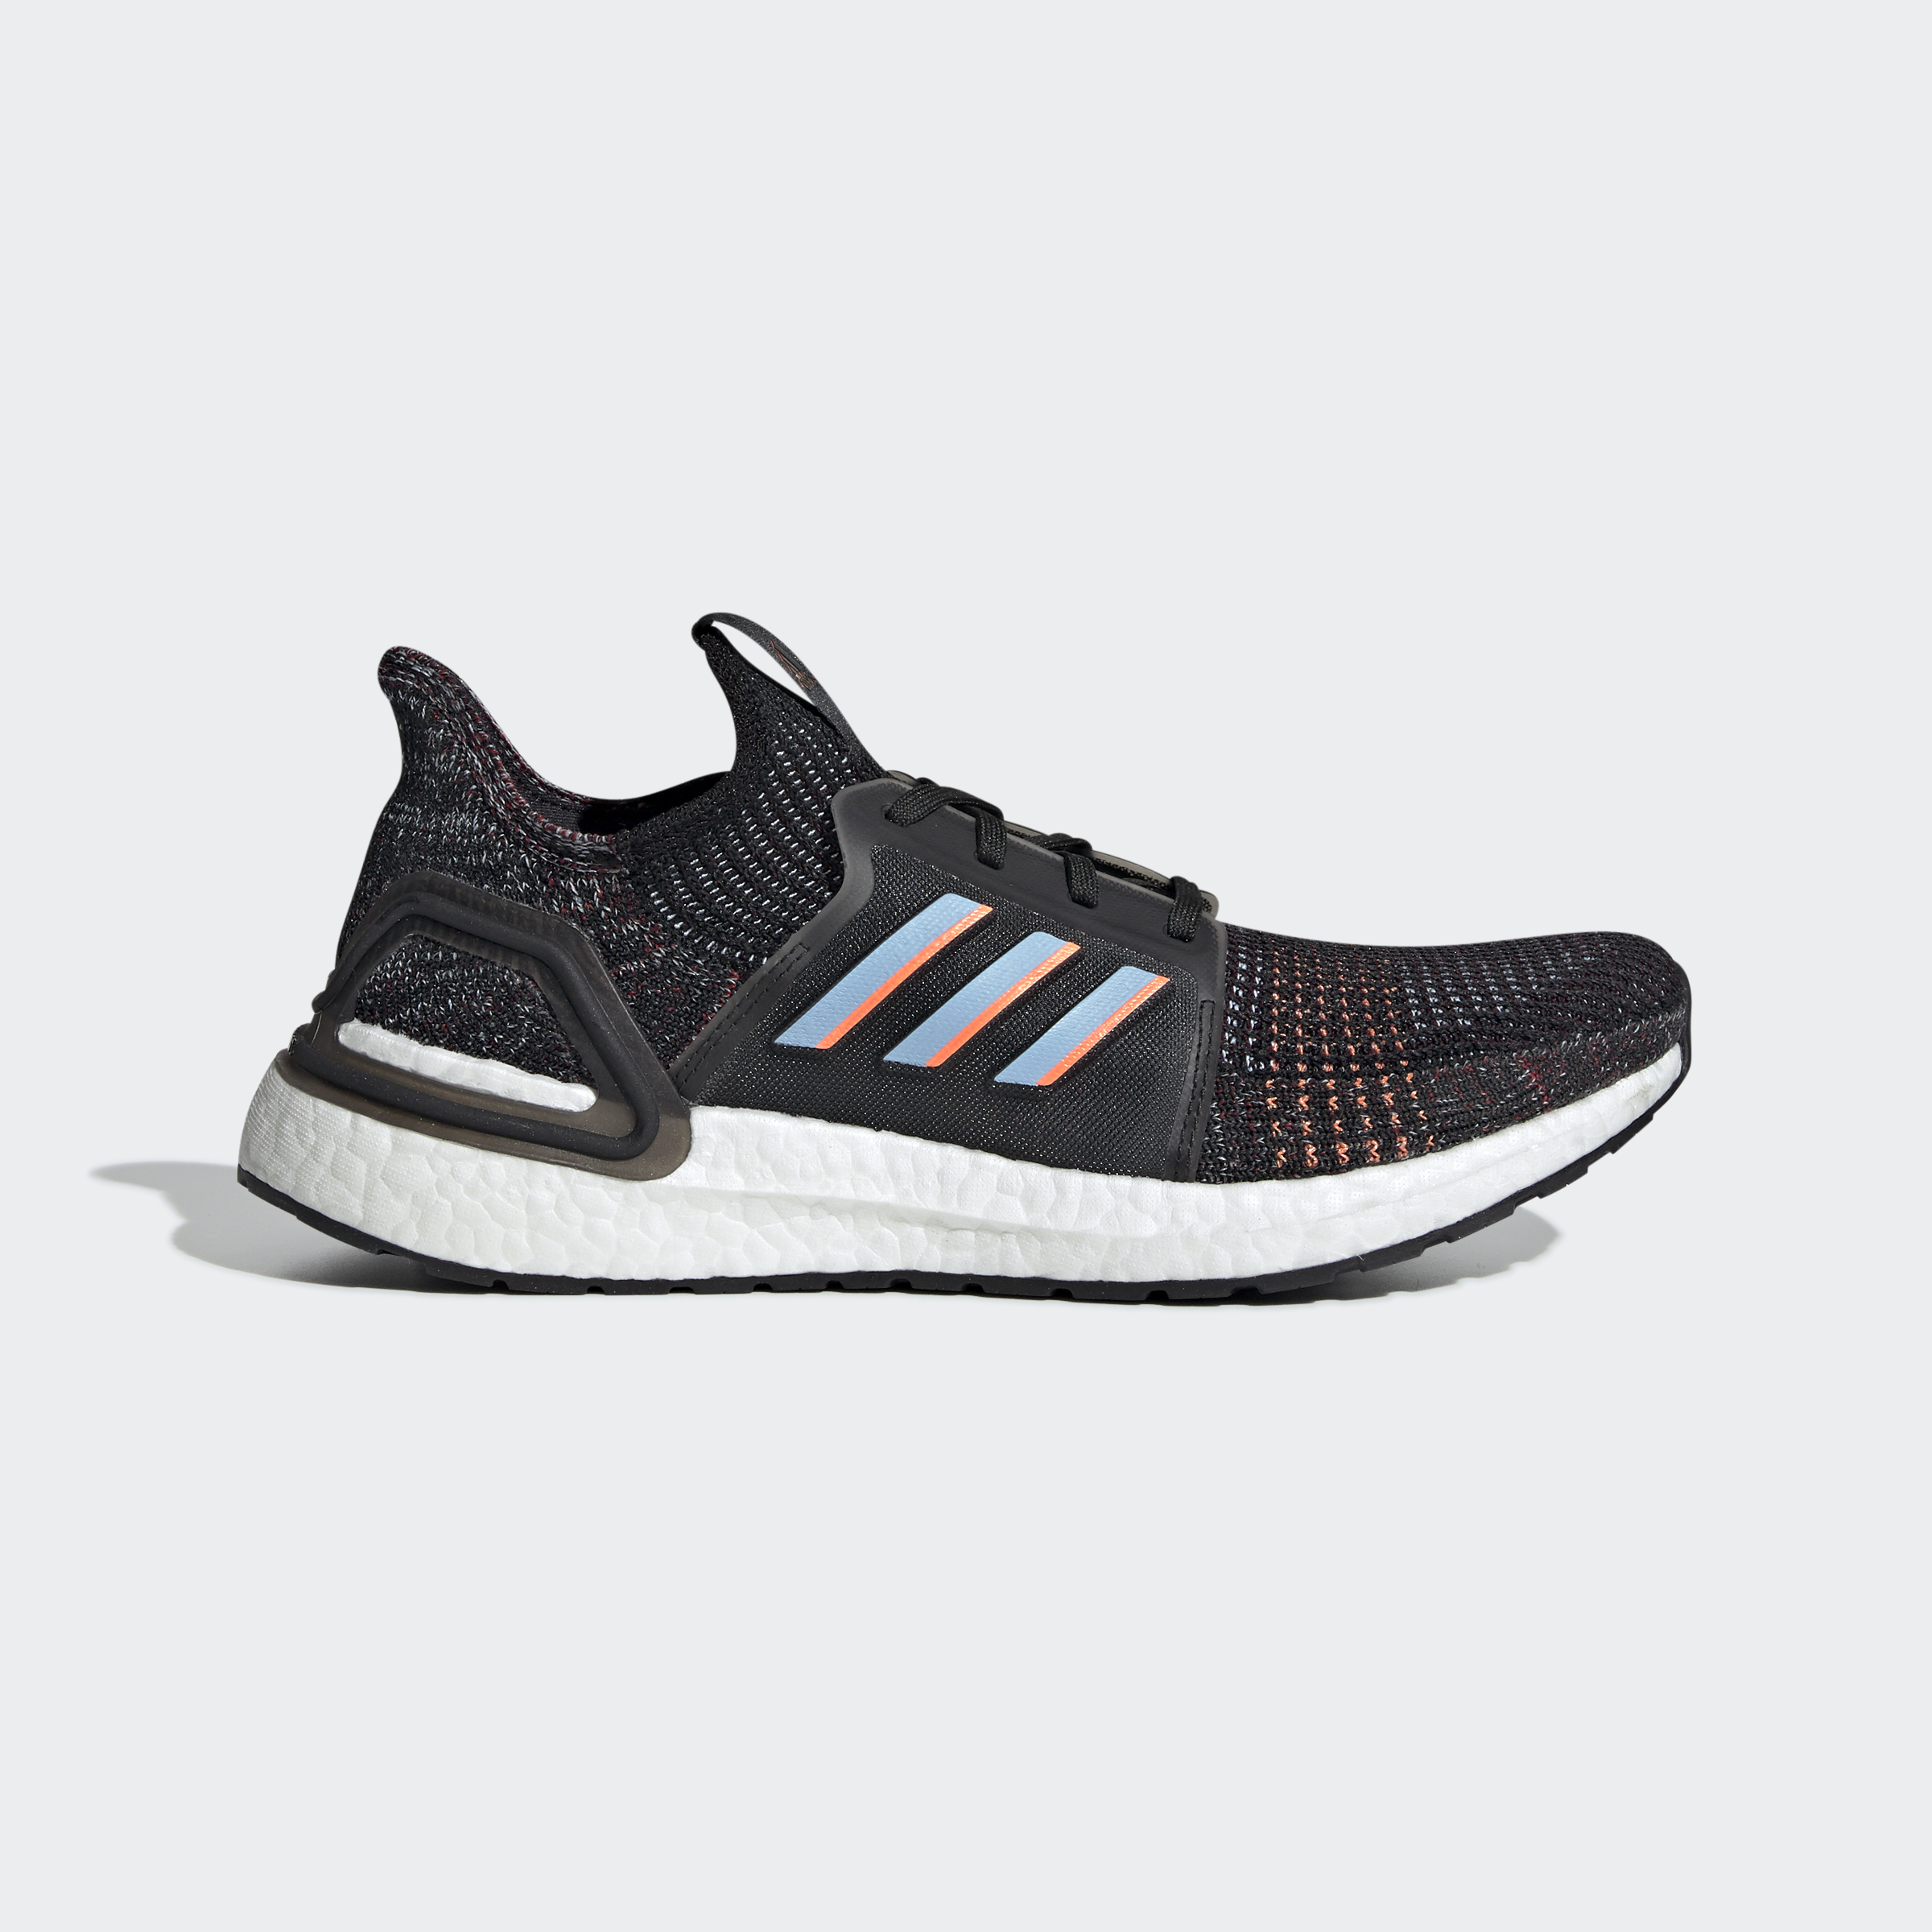 adidas-Ultraboost-19-Shoes-Athletic-amp-Sneakers thumbnail 133